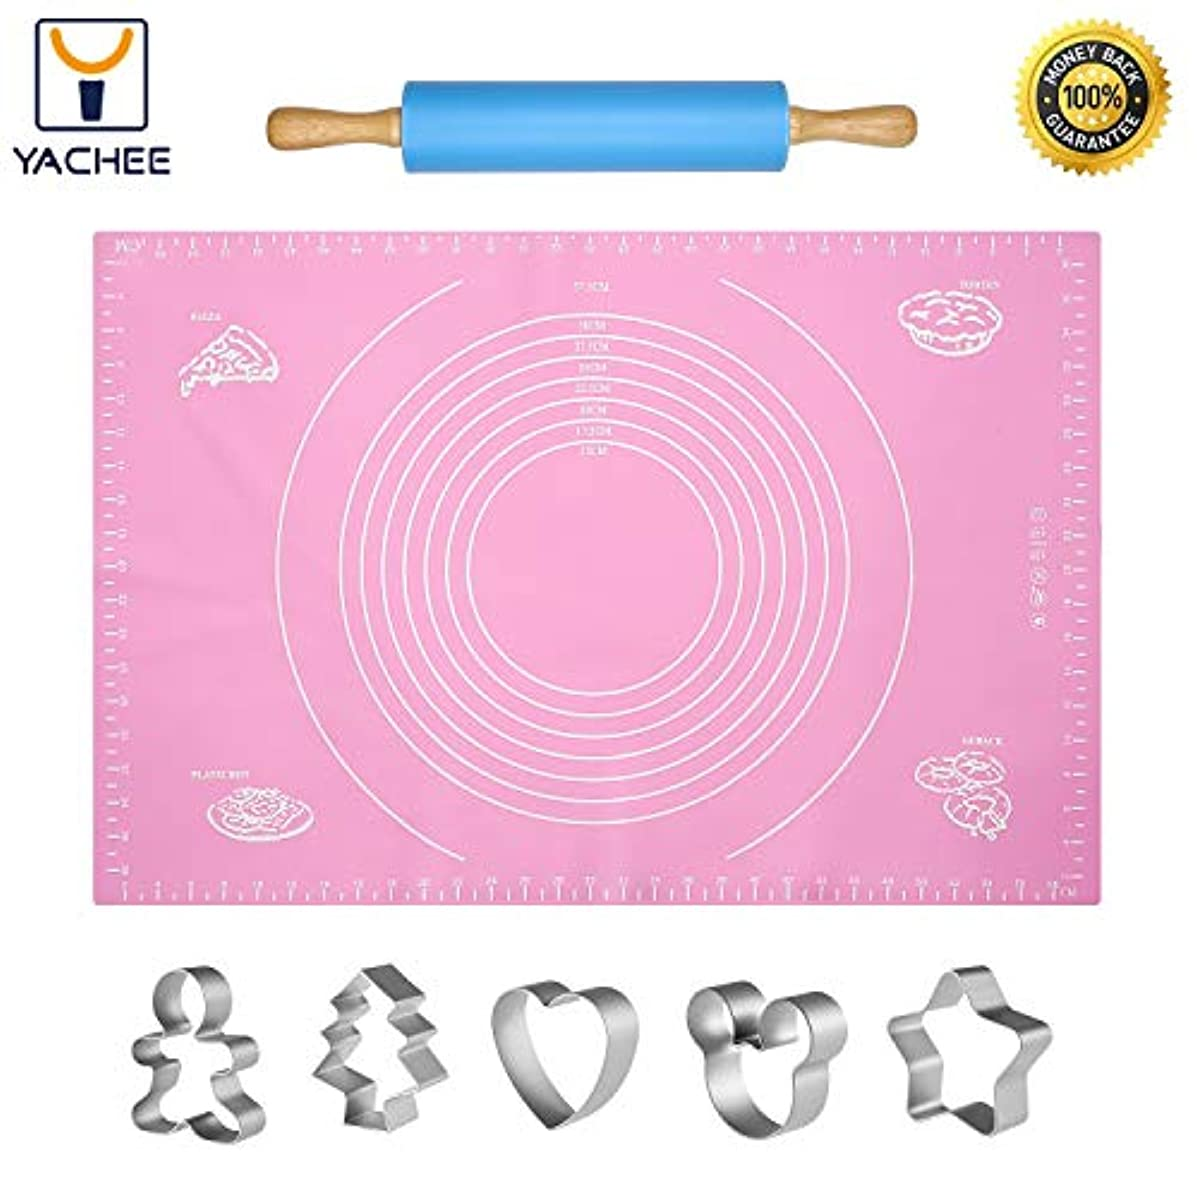 Yachee Silicone Baking Mat Set for Pastry Rolling Dough with Measurements, Extra Large Liner Heat Resistance - BPA Free - Reusable - Non-Stick Pastry Board with Rolling Pin and 5 Cookie Cutters-Pink